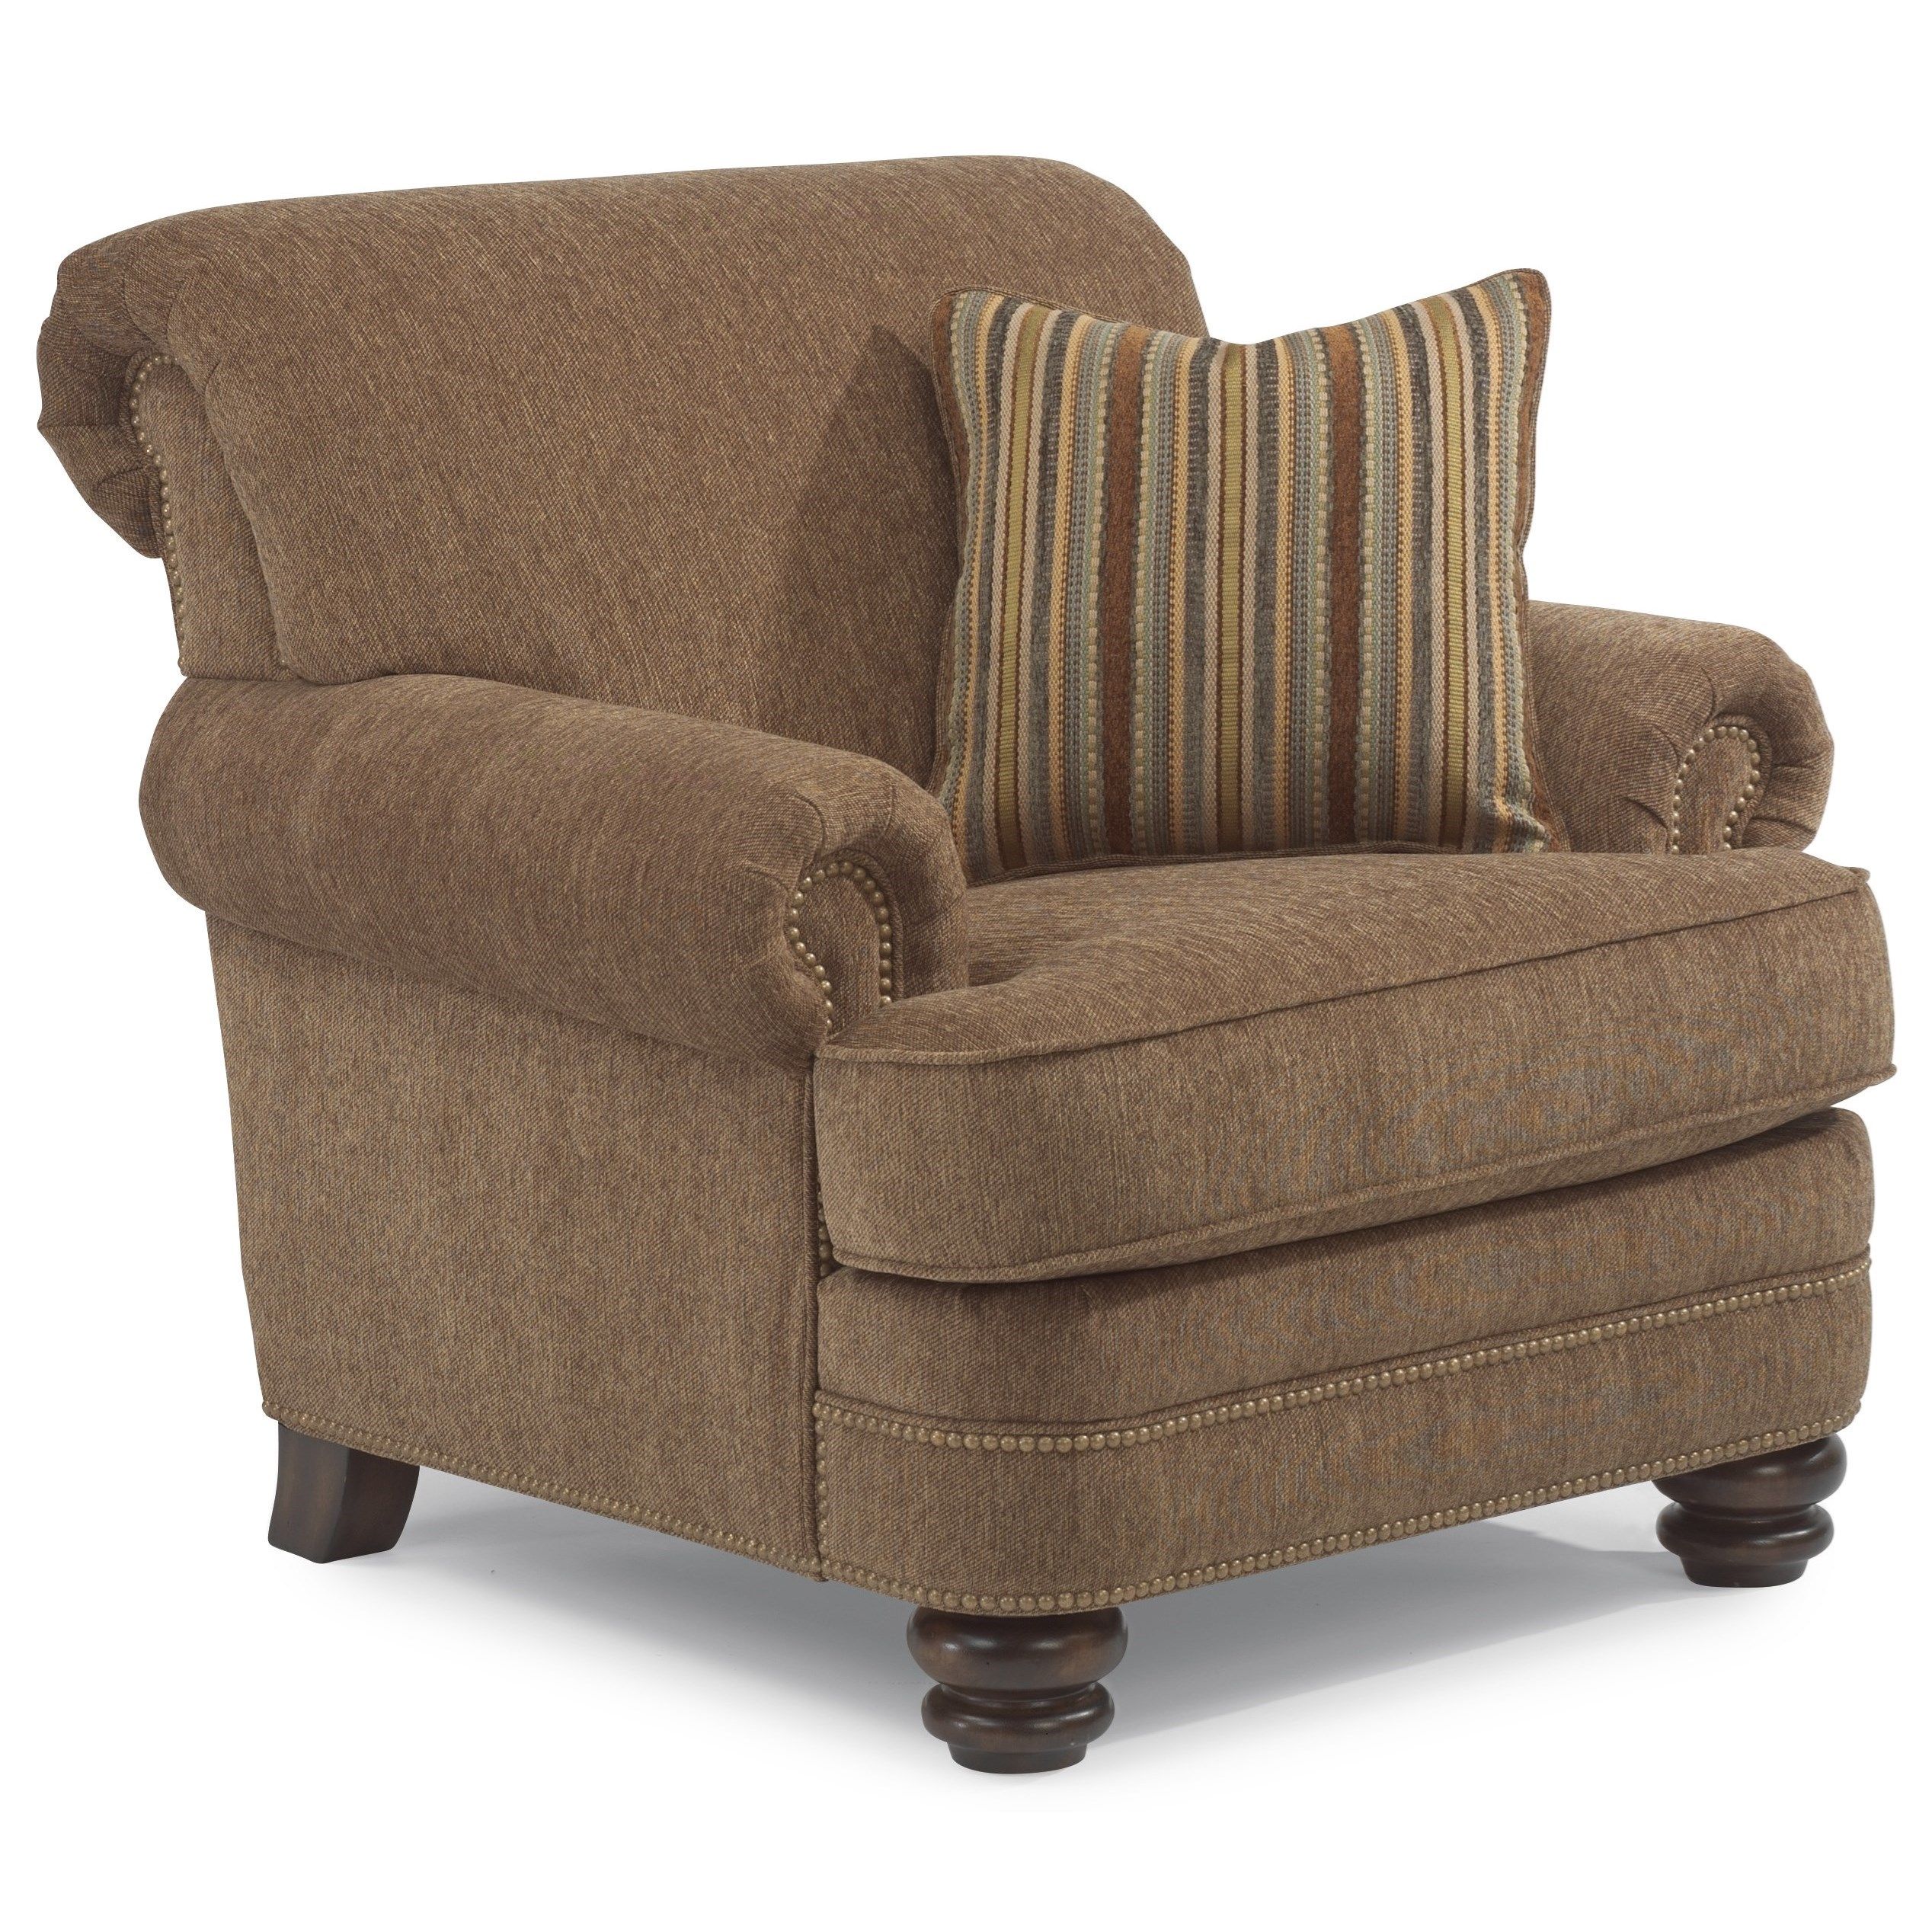 Bay Bridge Traditional Chair by Flexsteel at Jordan's Home Furnishings